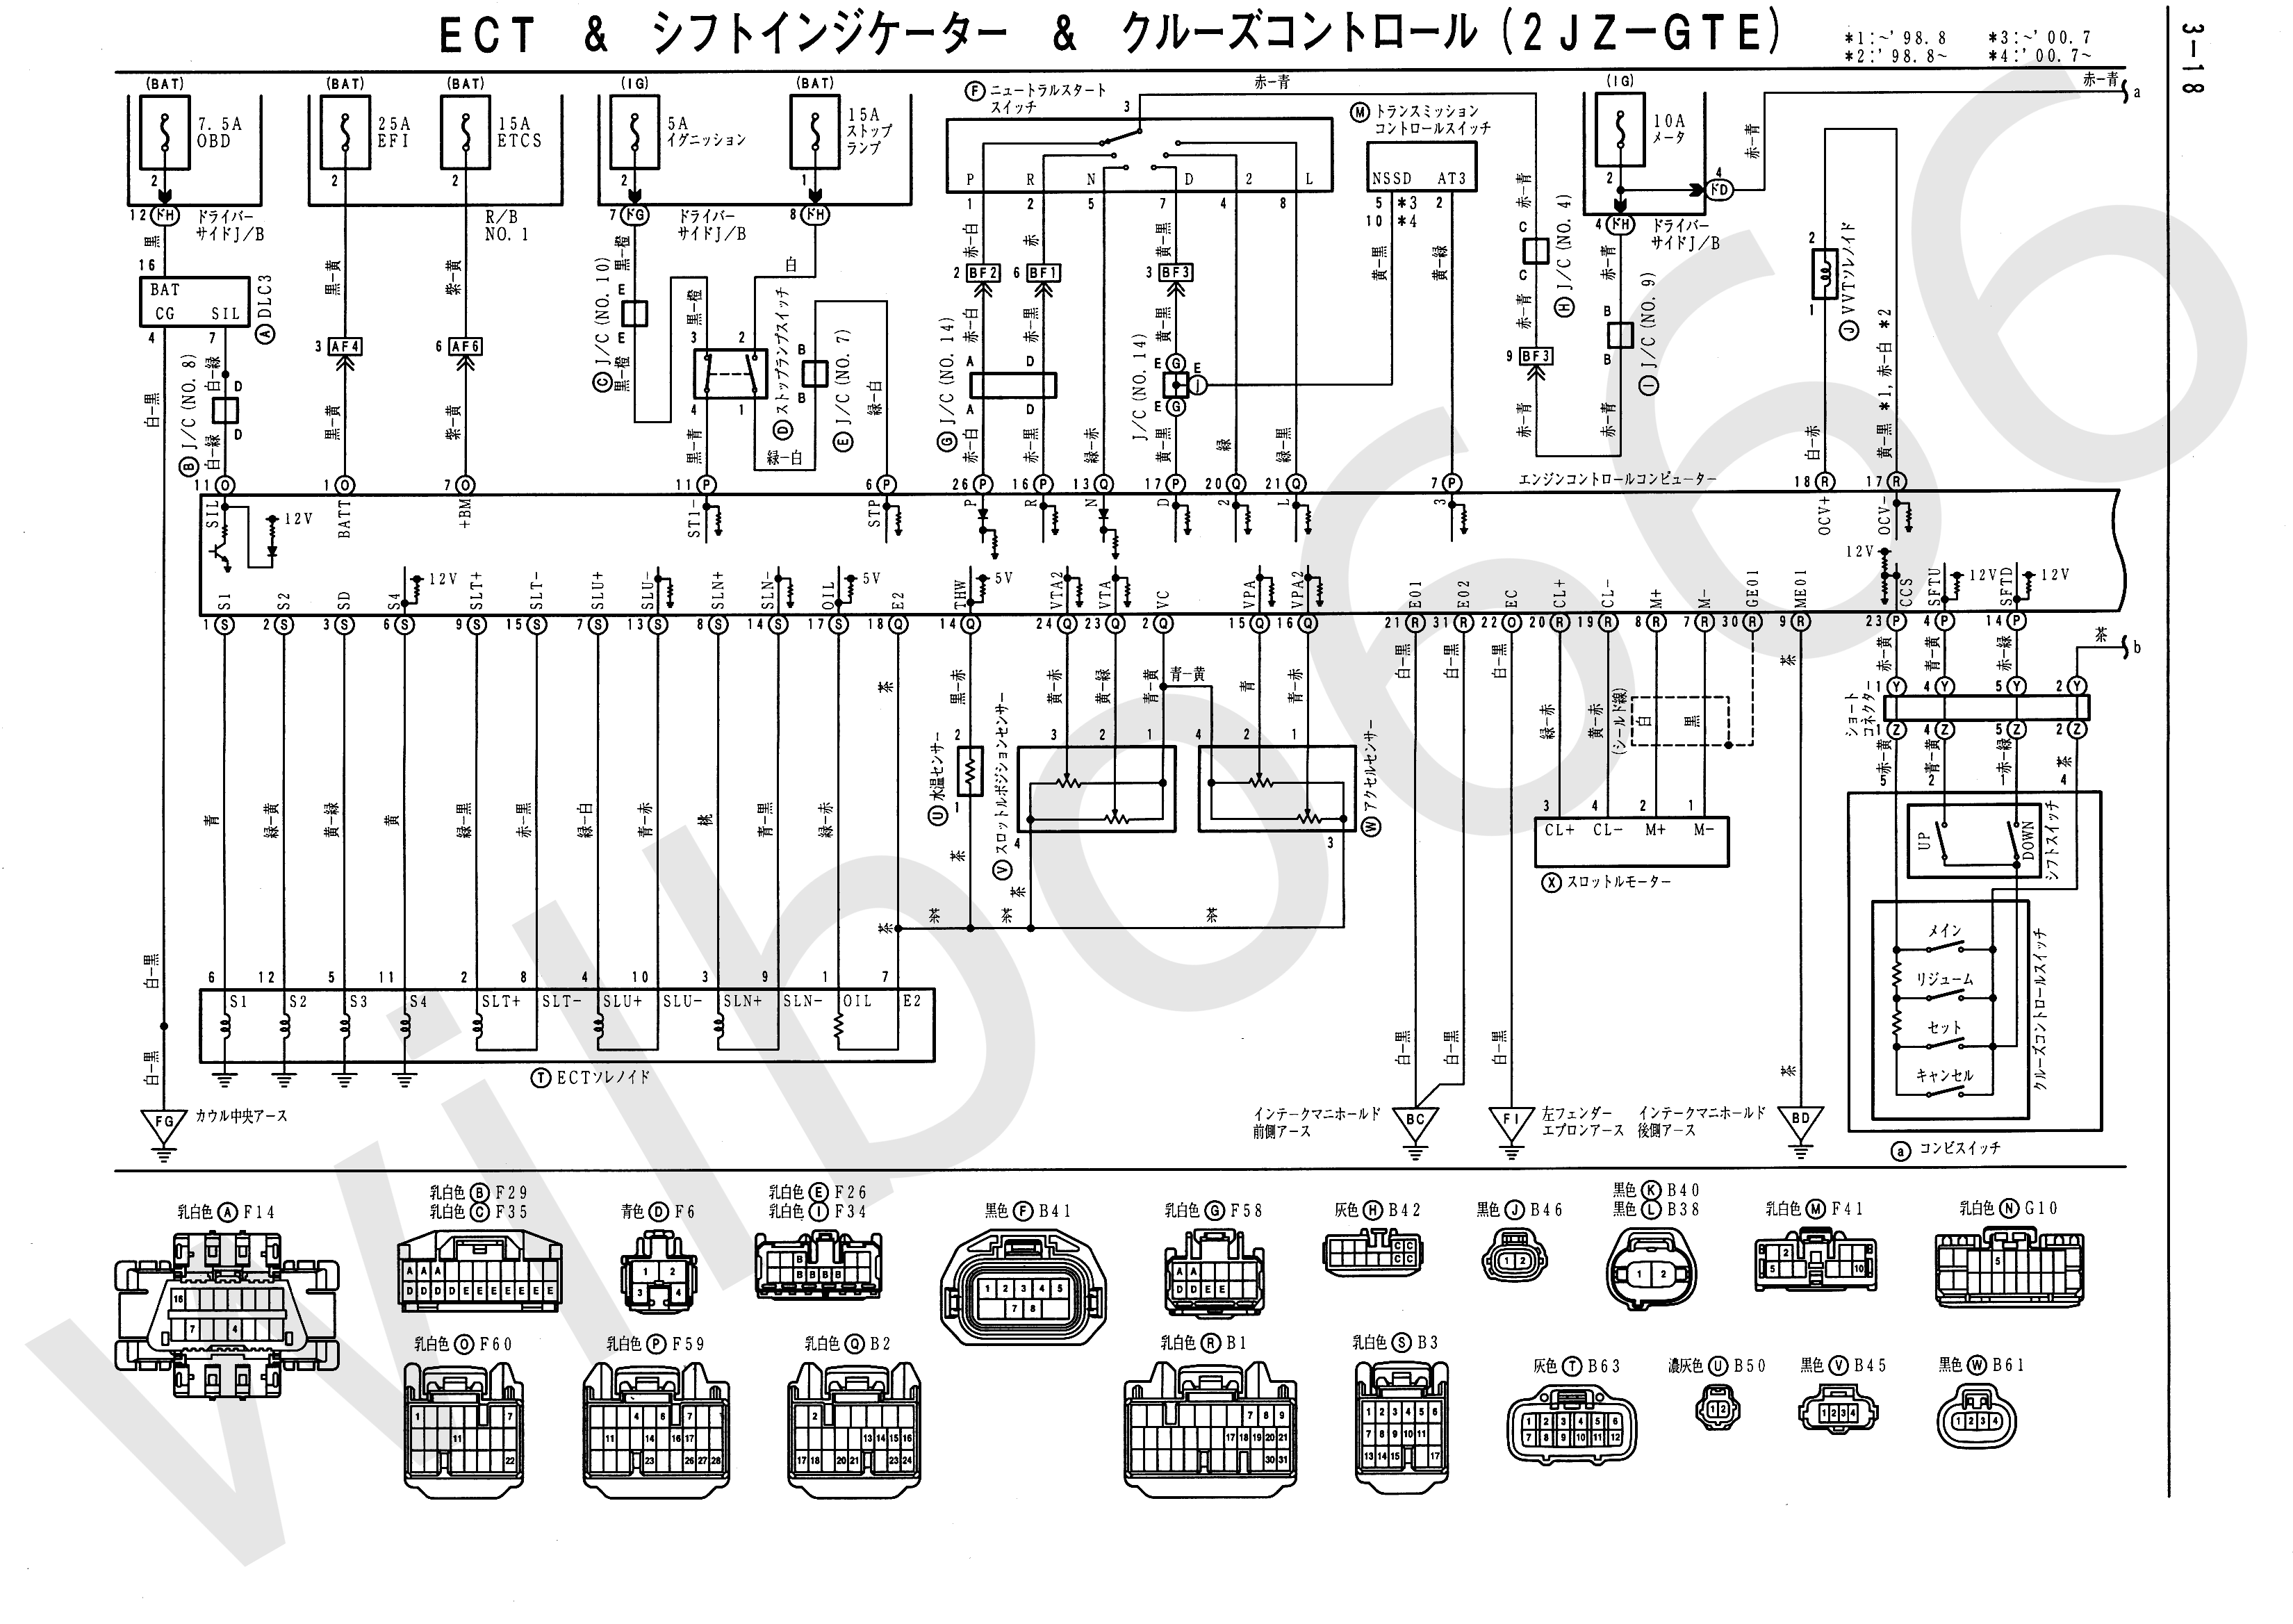 1jz vvti ecu wiring diagram  1jz  free engine image for